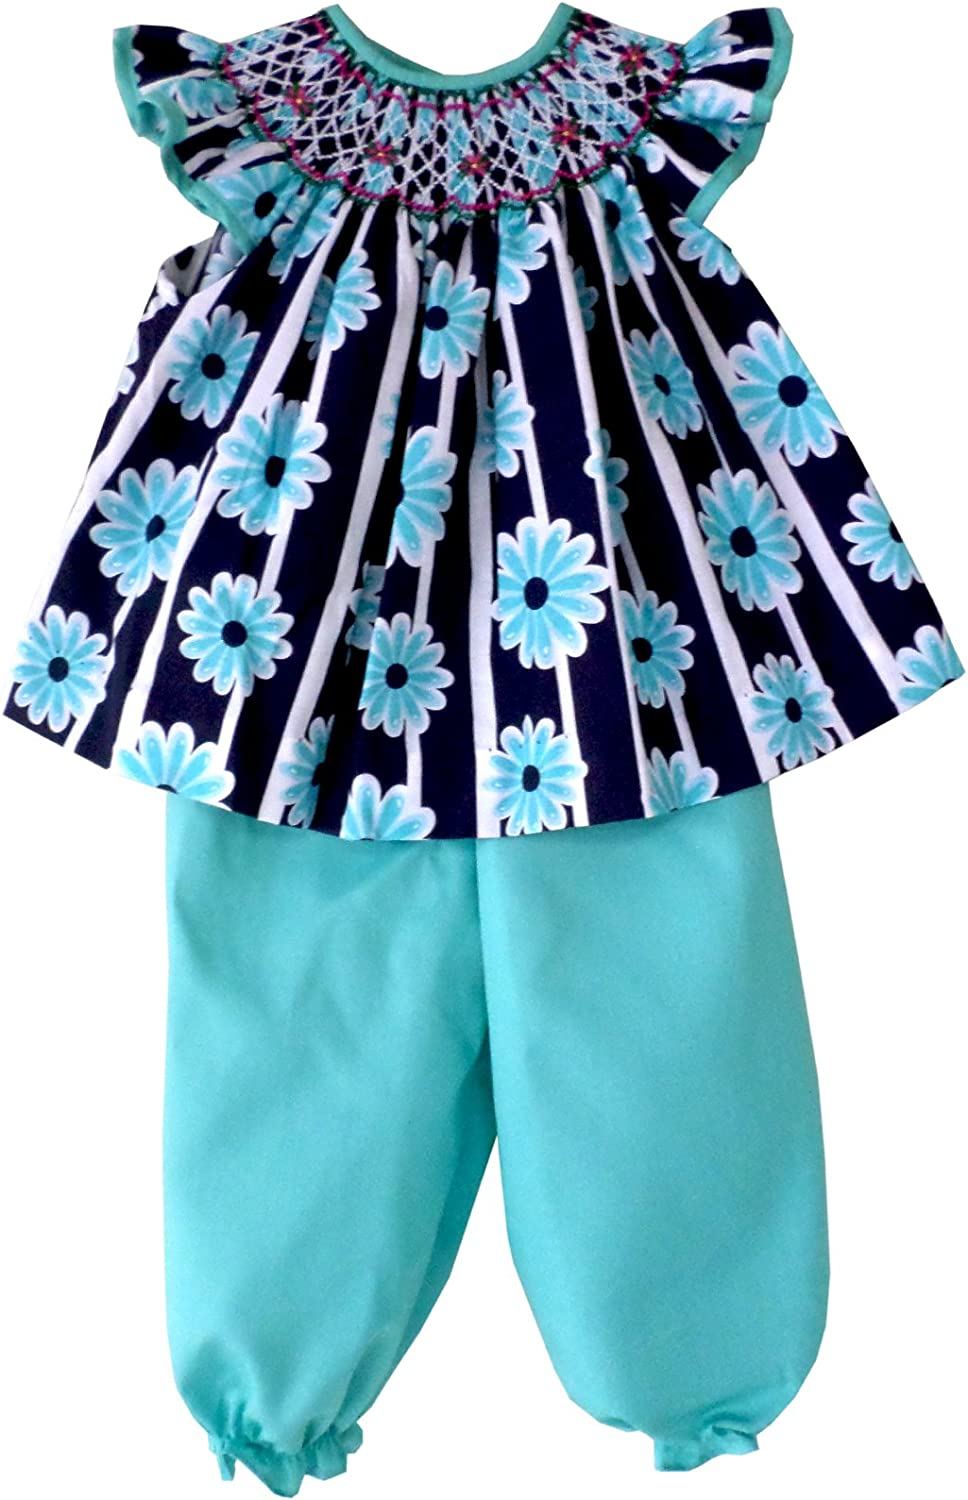 Hand Smocked Max 87% OFF Easter Dress for Baby 2 with Challenge the lowest price of Japan Pants Girls Turquoise